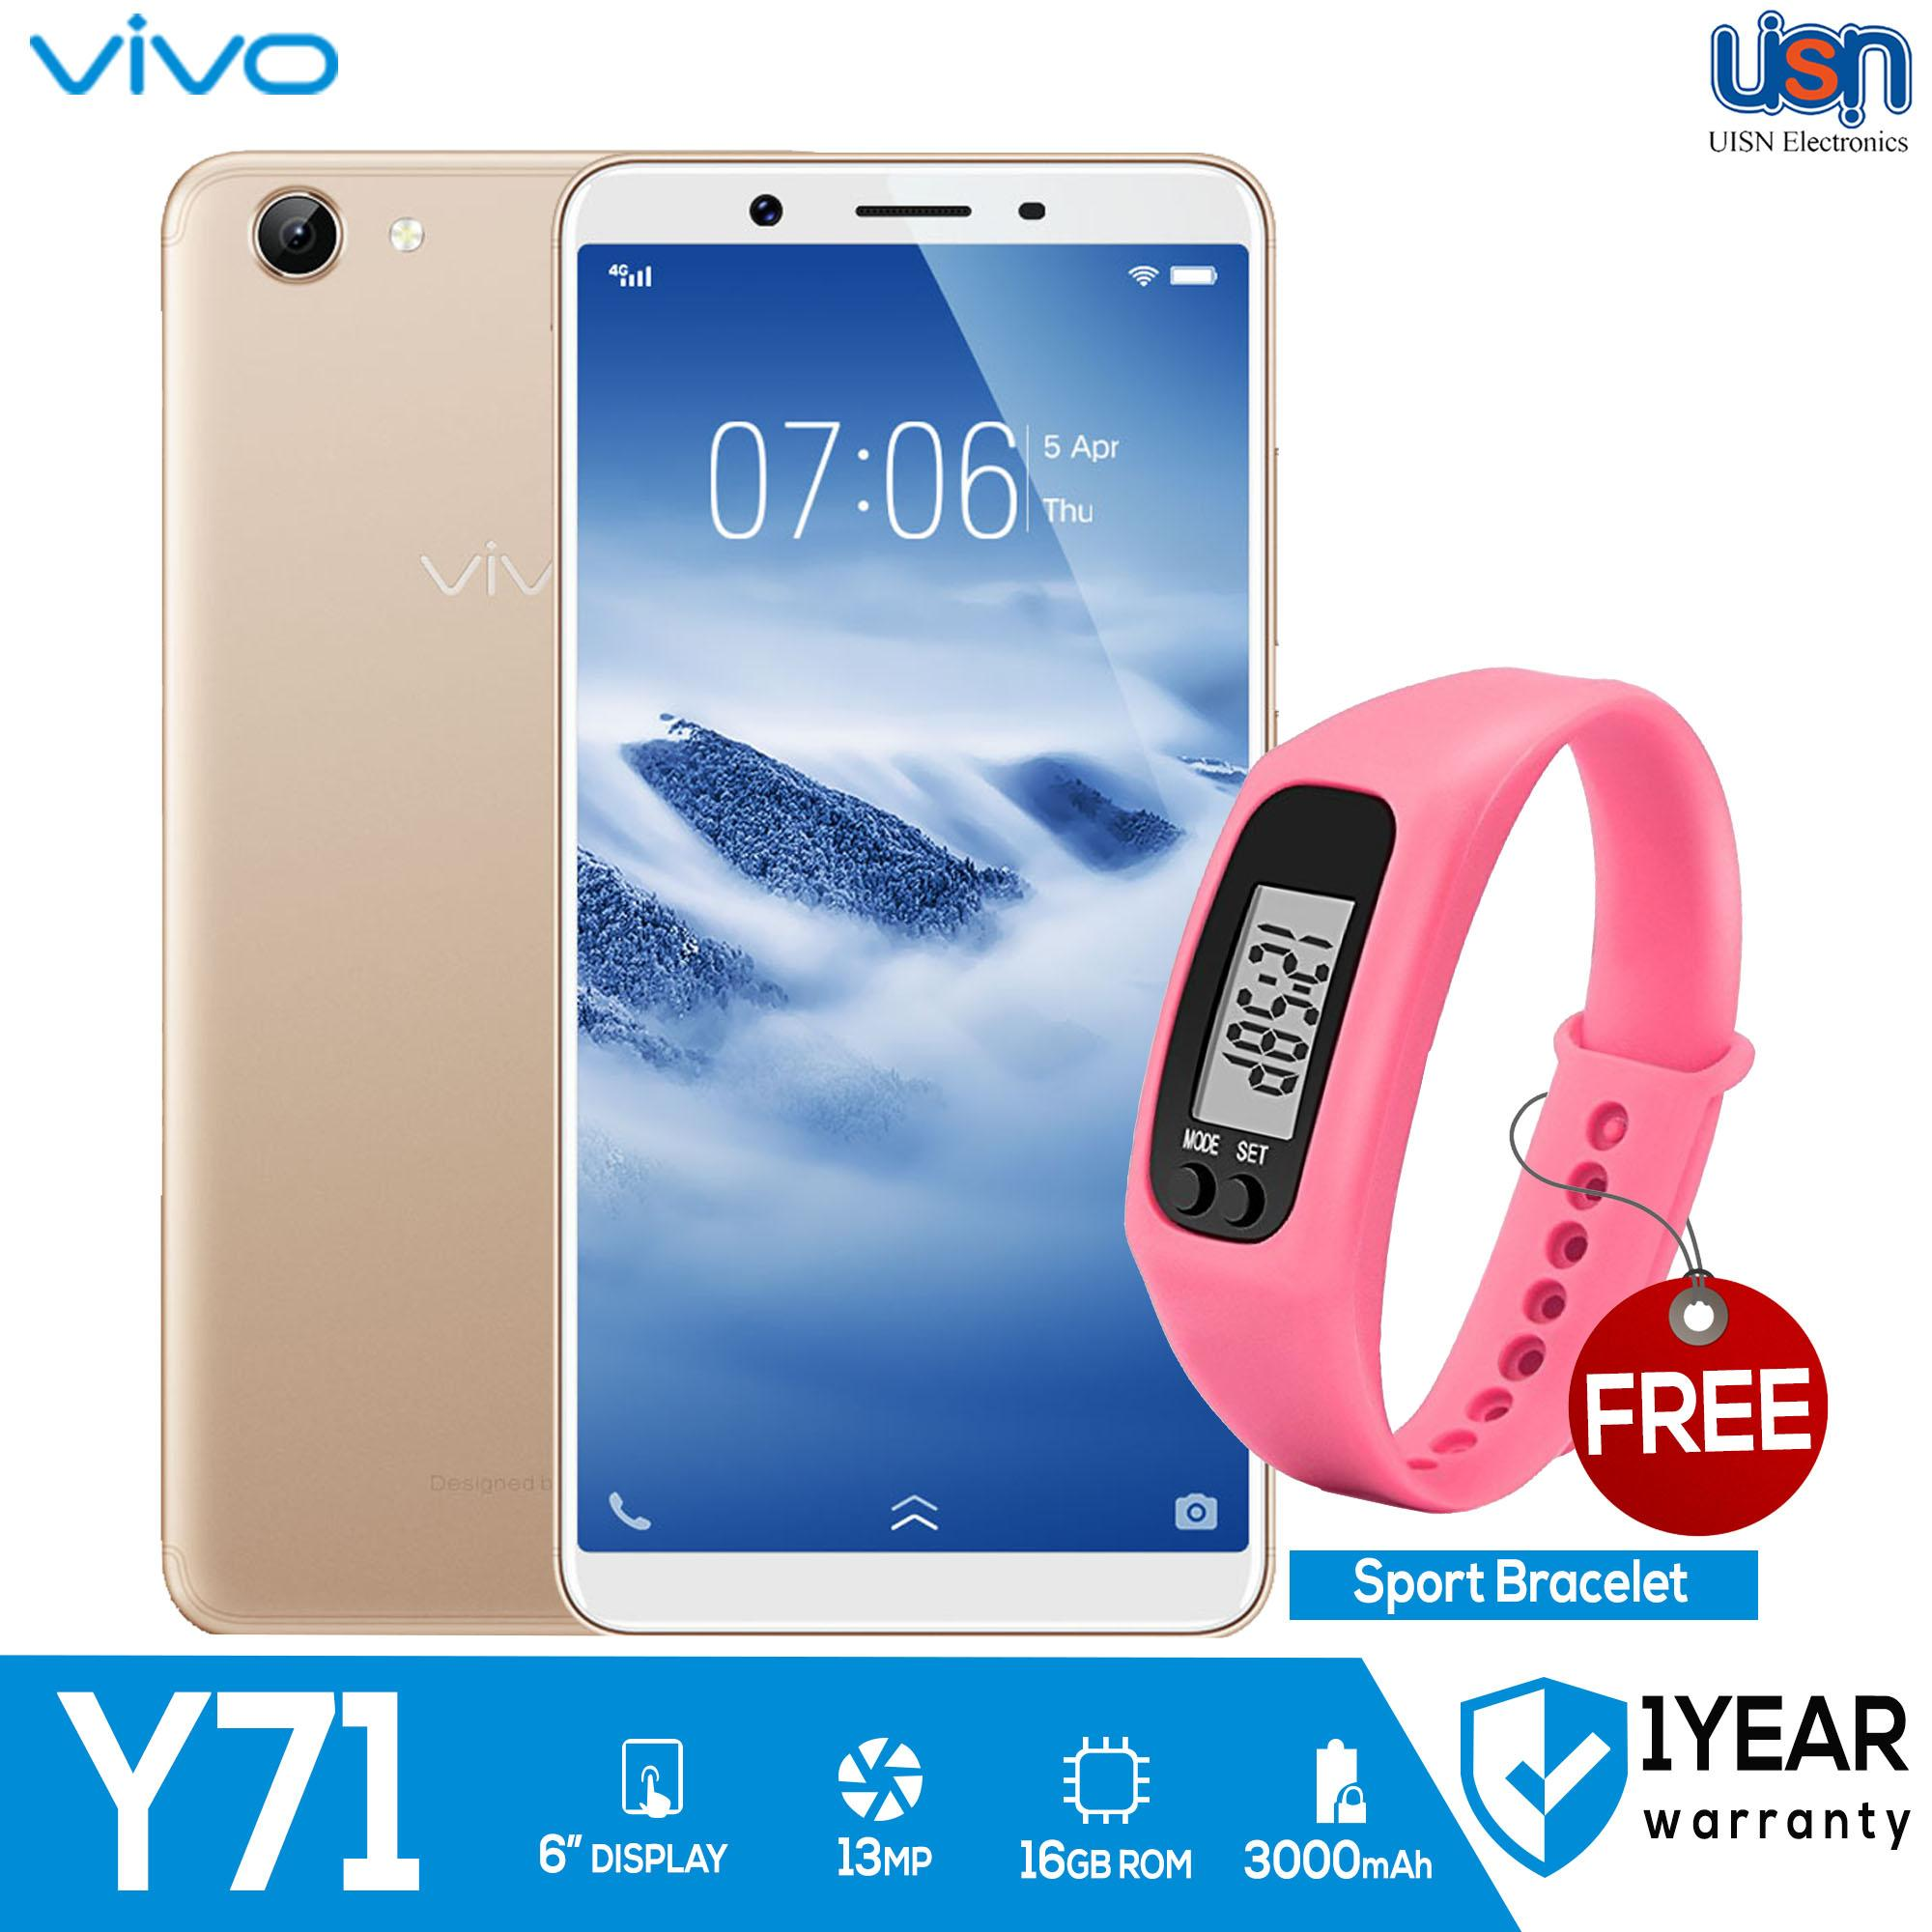 Promo Ter Vivo Y53 Black Hitam 2 16gb Garansi Resmi Free Terbaru Smartphone Gold Buy Sell Cheapest Best Quality Product Deals